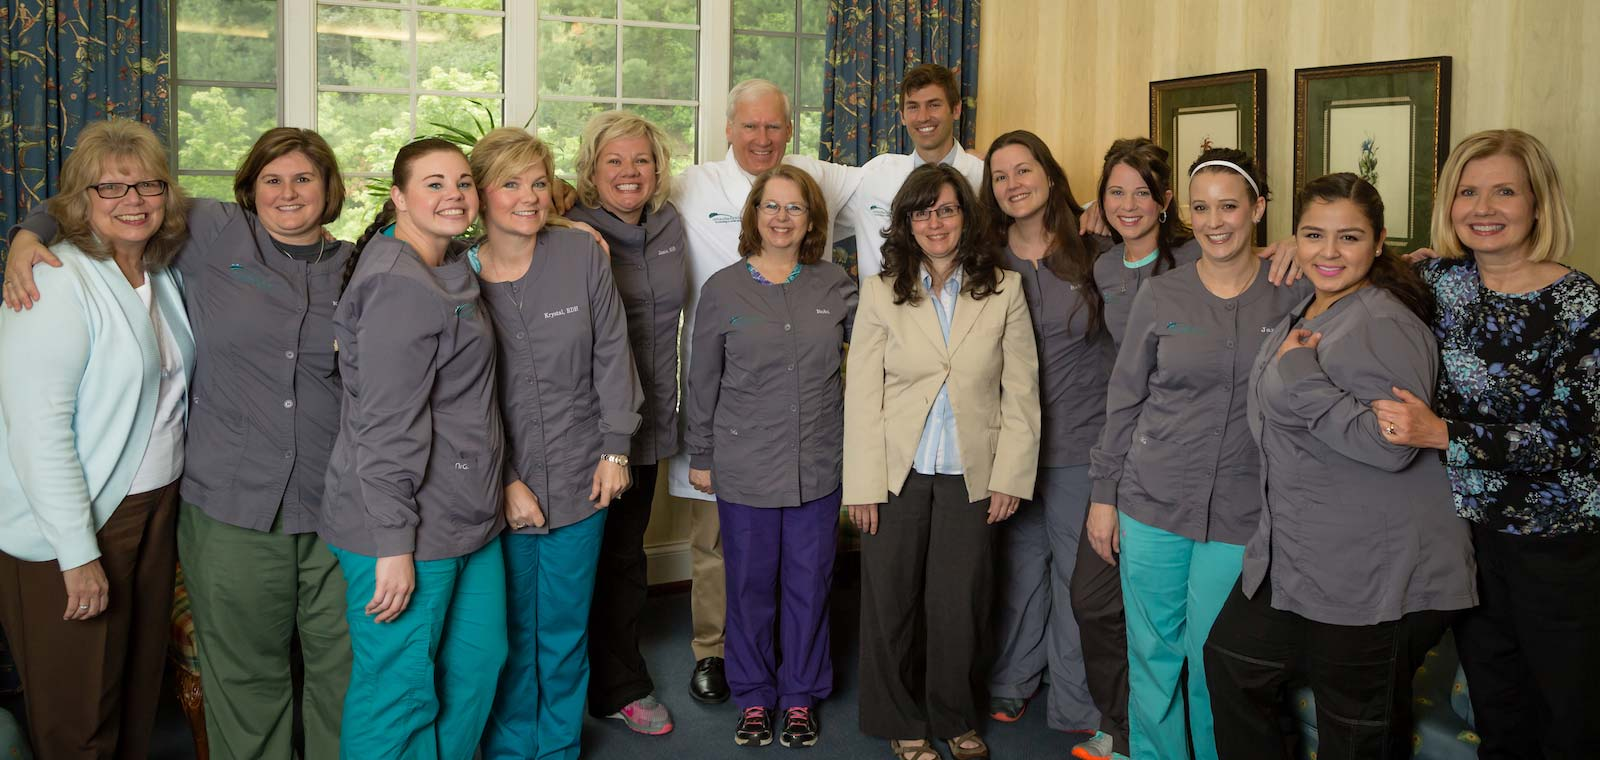 Asheville Dental Friendly and knowledgeable staff